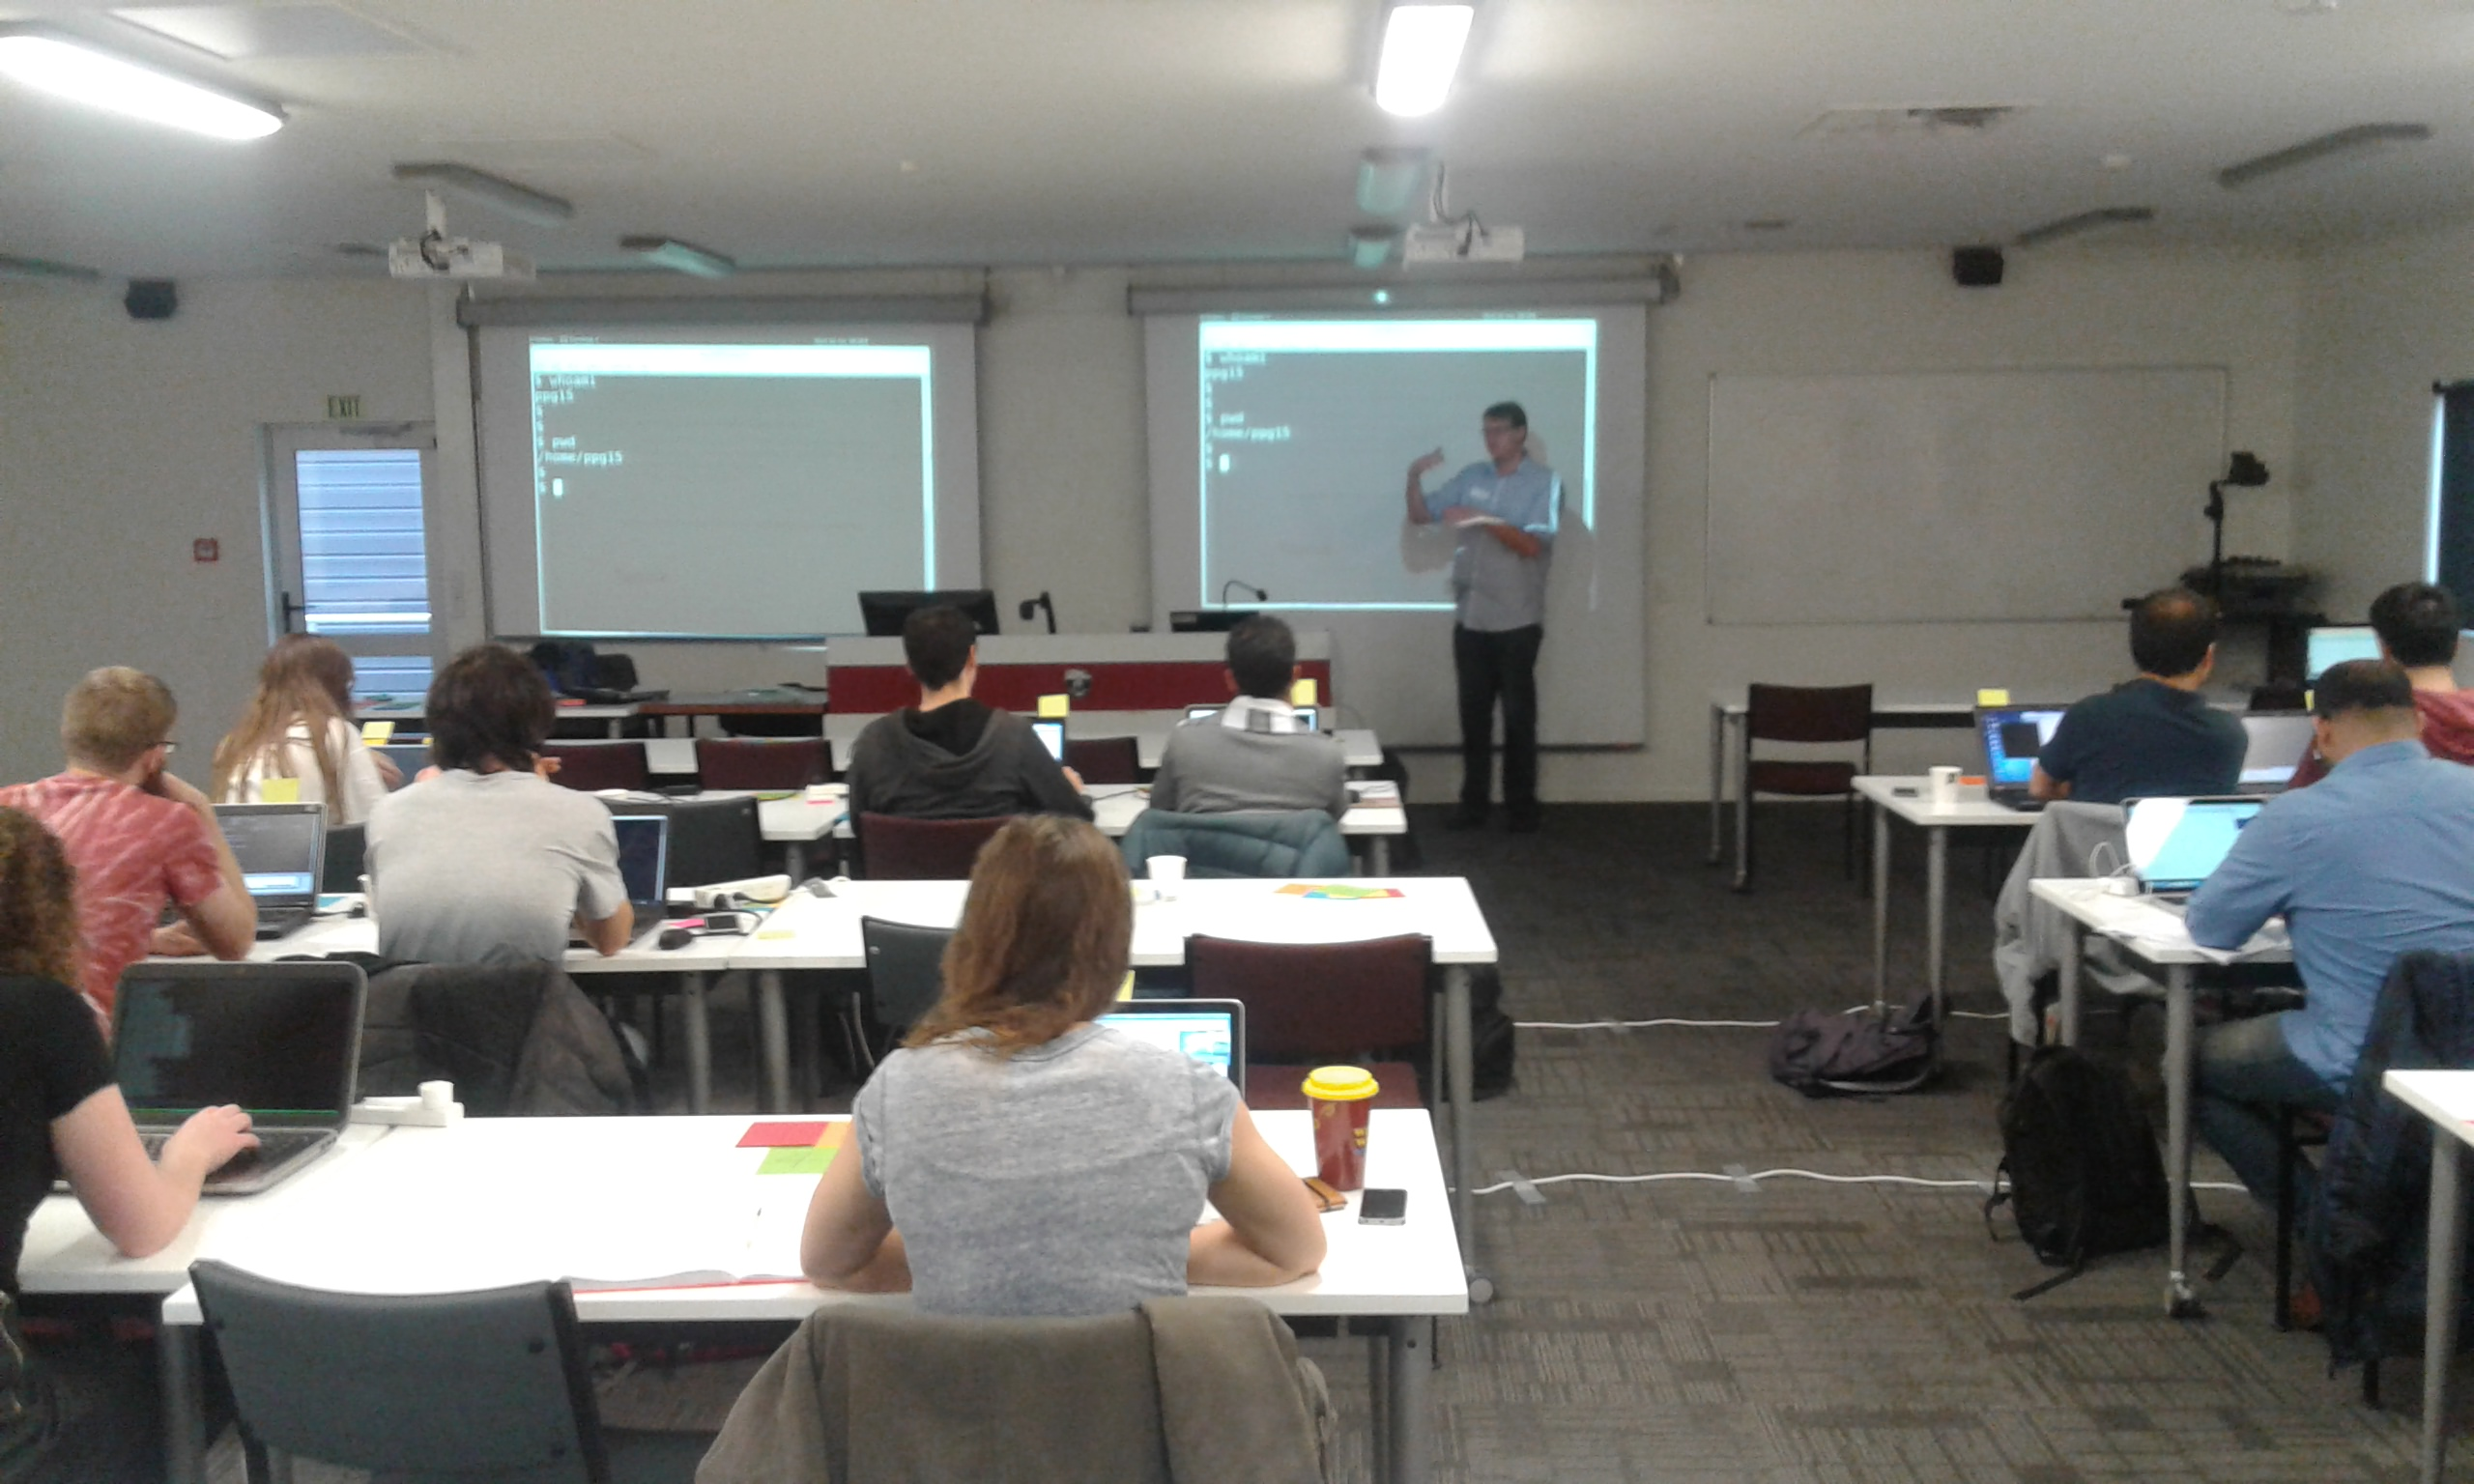 Software Carpentry Training at the University of Canterbury